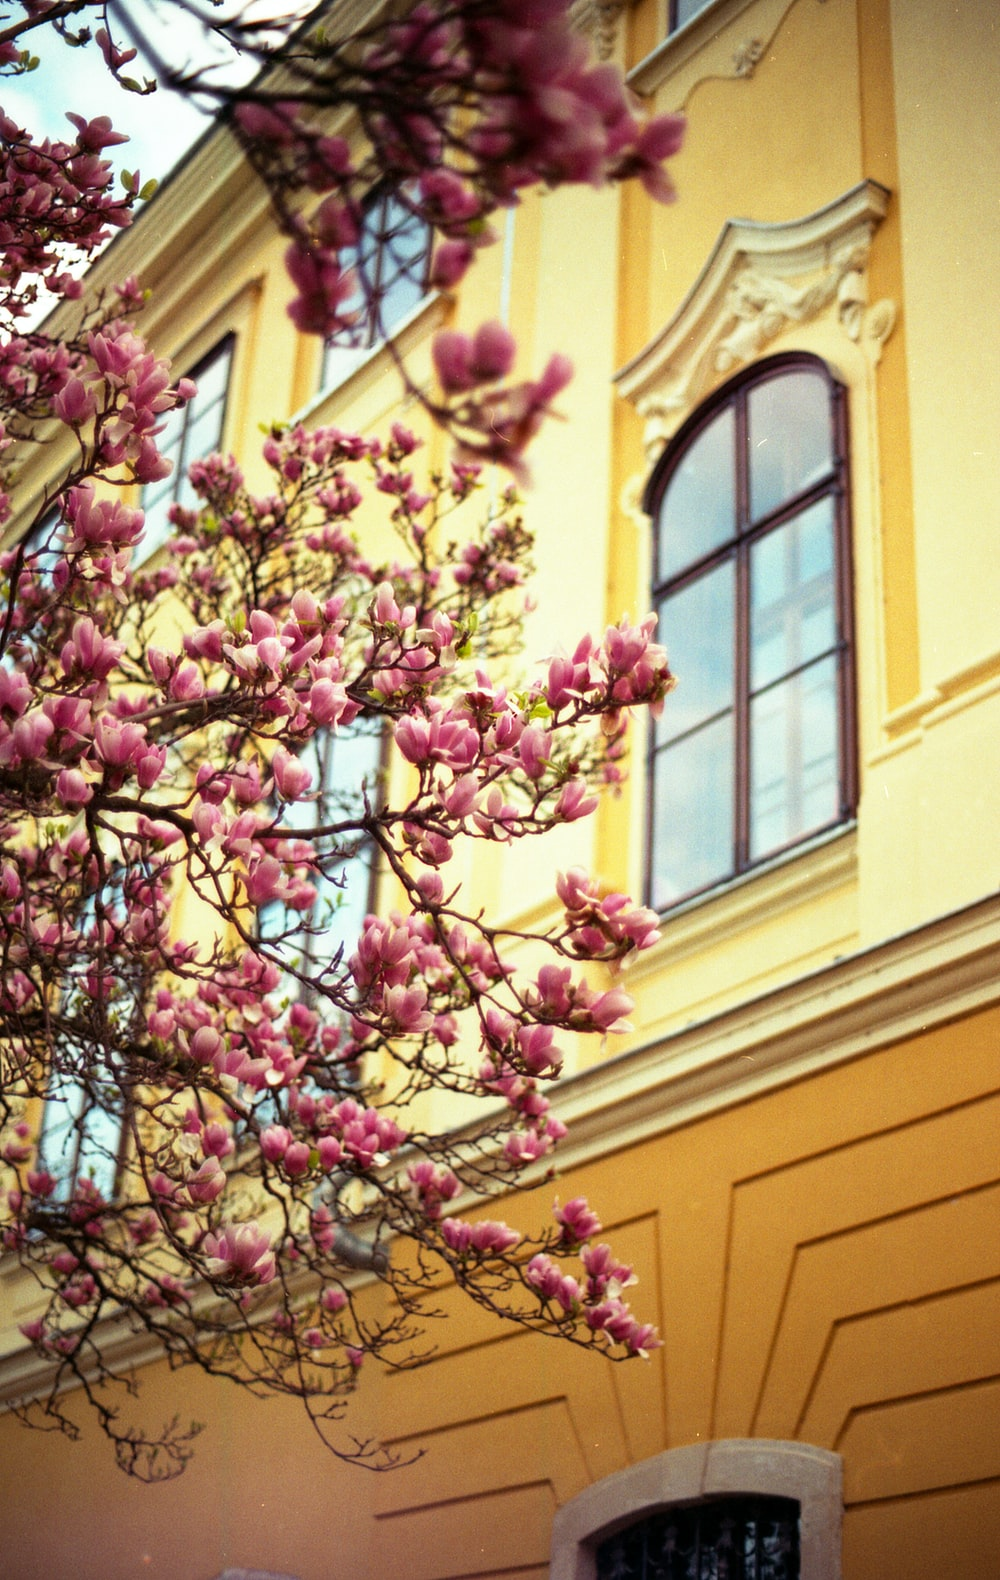 pink and white flowers on yellow concrete building